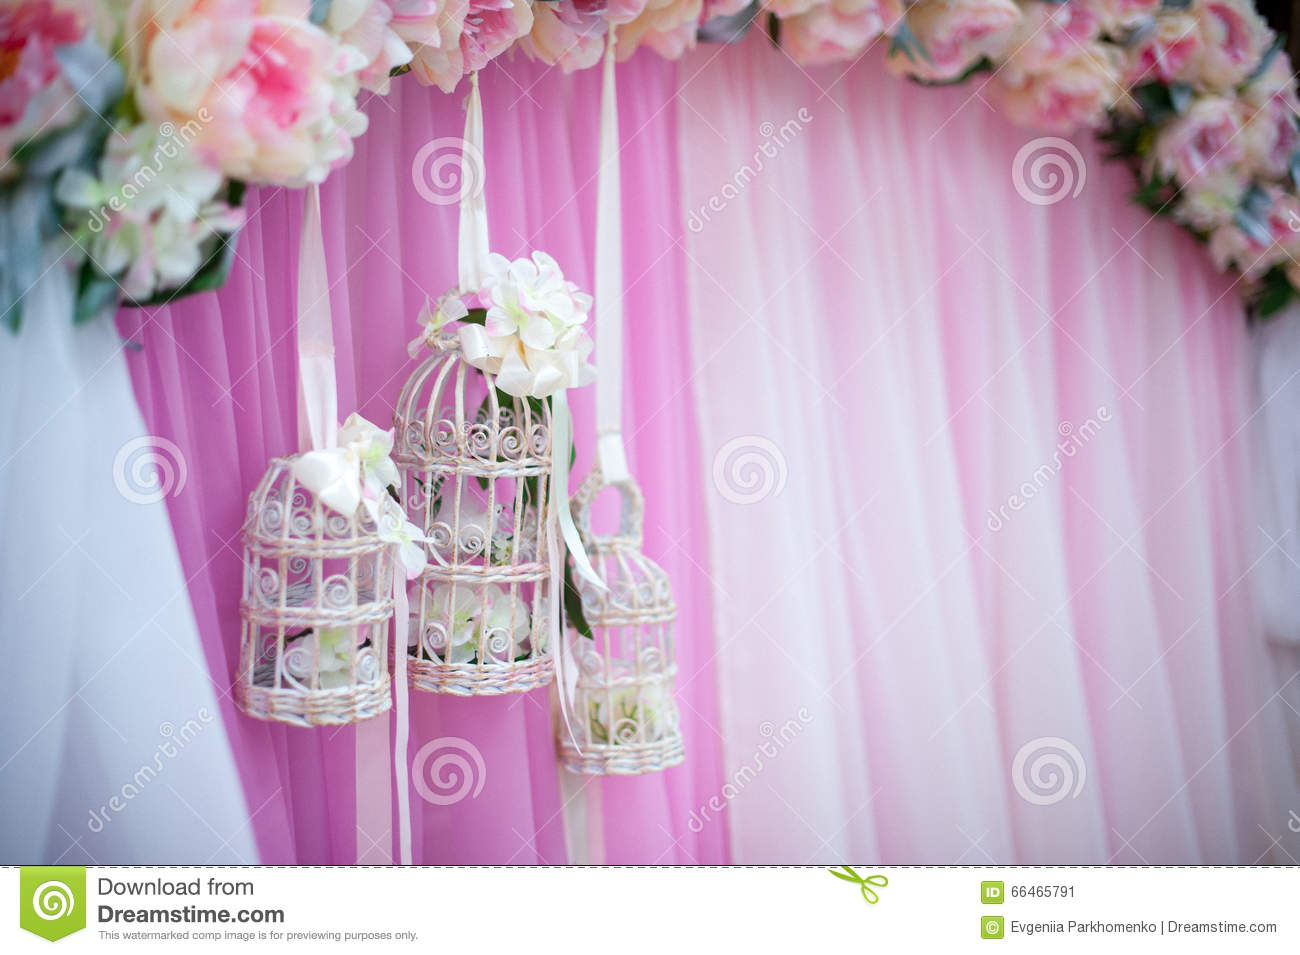 Decorative Cage At The Wedding Stock Image - Image of concepts ...